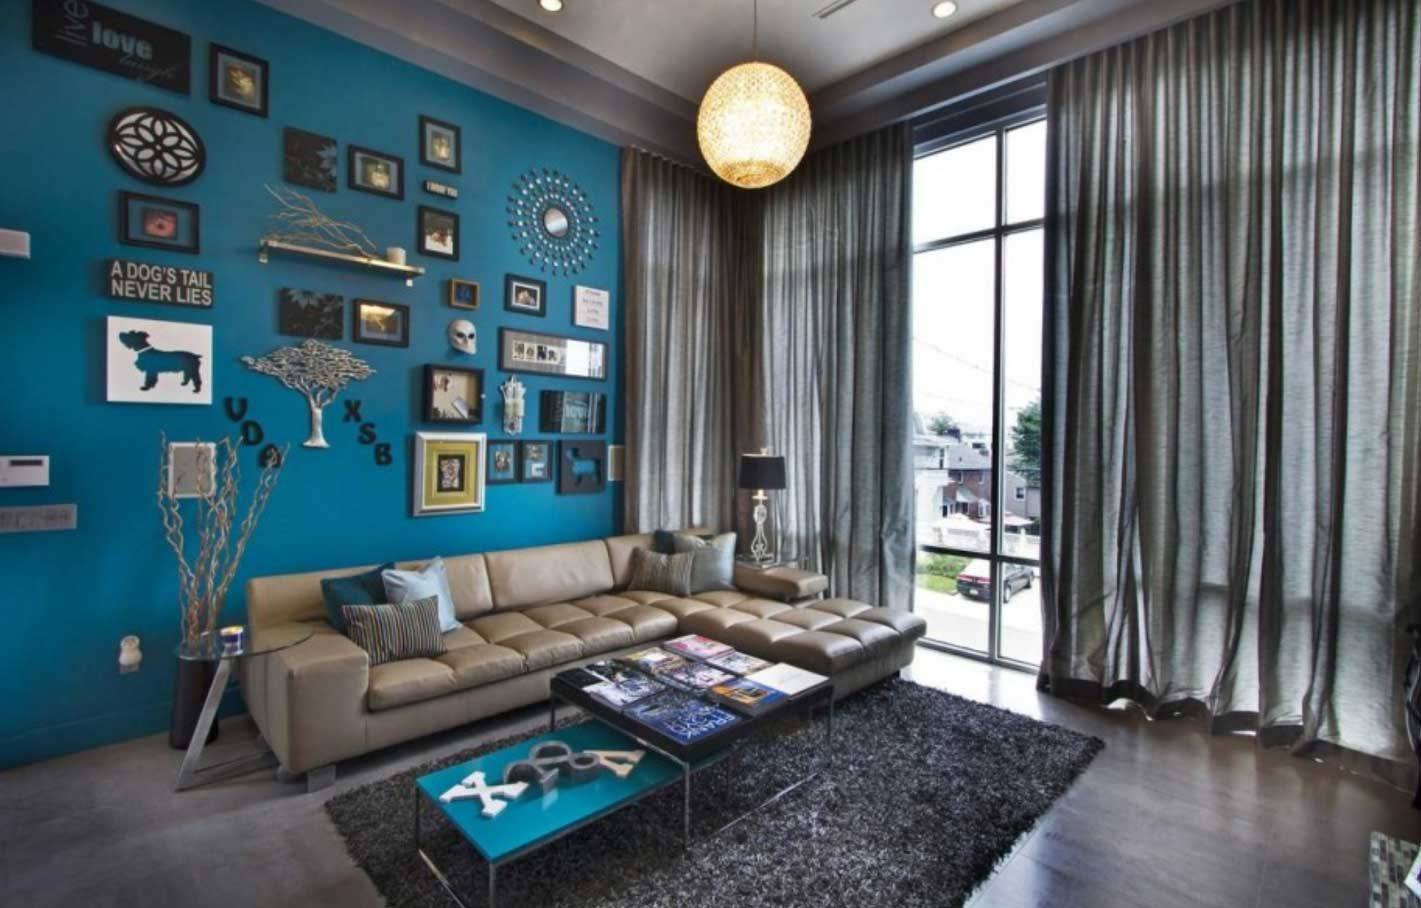 10 Teal And Brown Living Room Ideas 2019 The Riveting Pair In 2020 Blue Walls Living Room Blue Living Room Accent Walls In Living Room #teal #and #brown #living #room #decorating #ideas